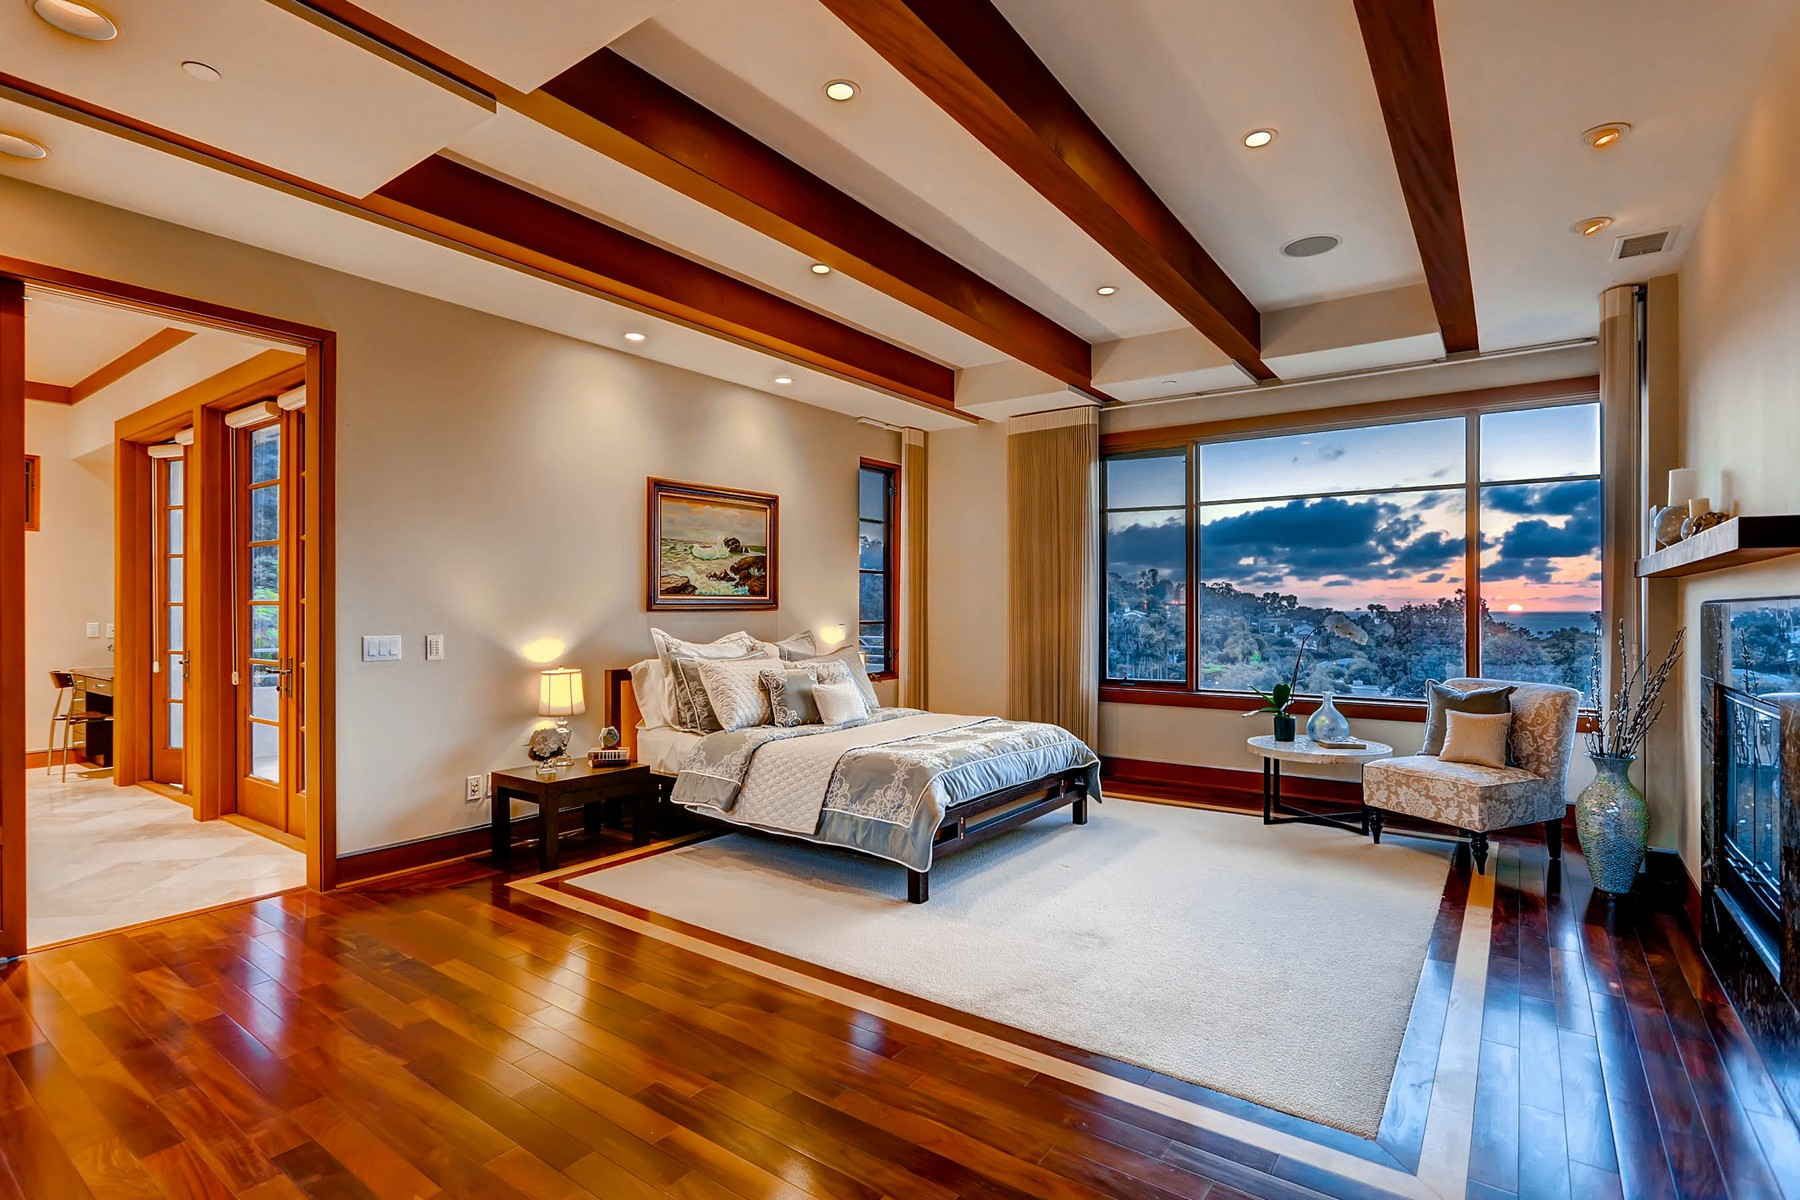 Single Family Home for Sale at 2480 Hidden Valley Road La Jolla, California, 92037 United States